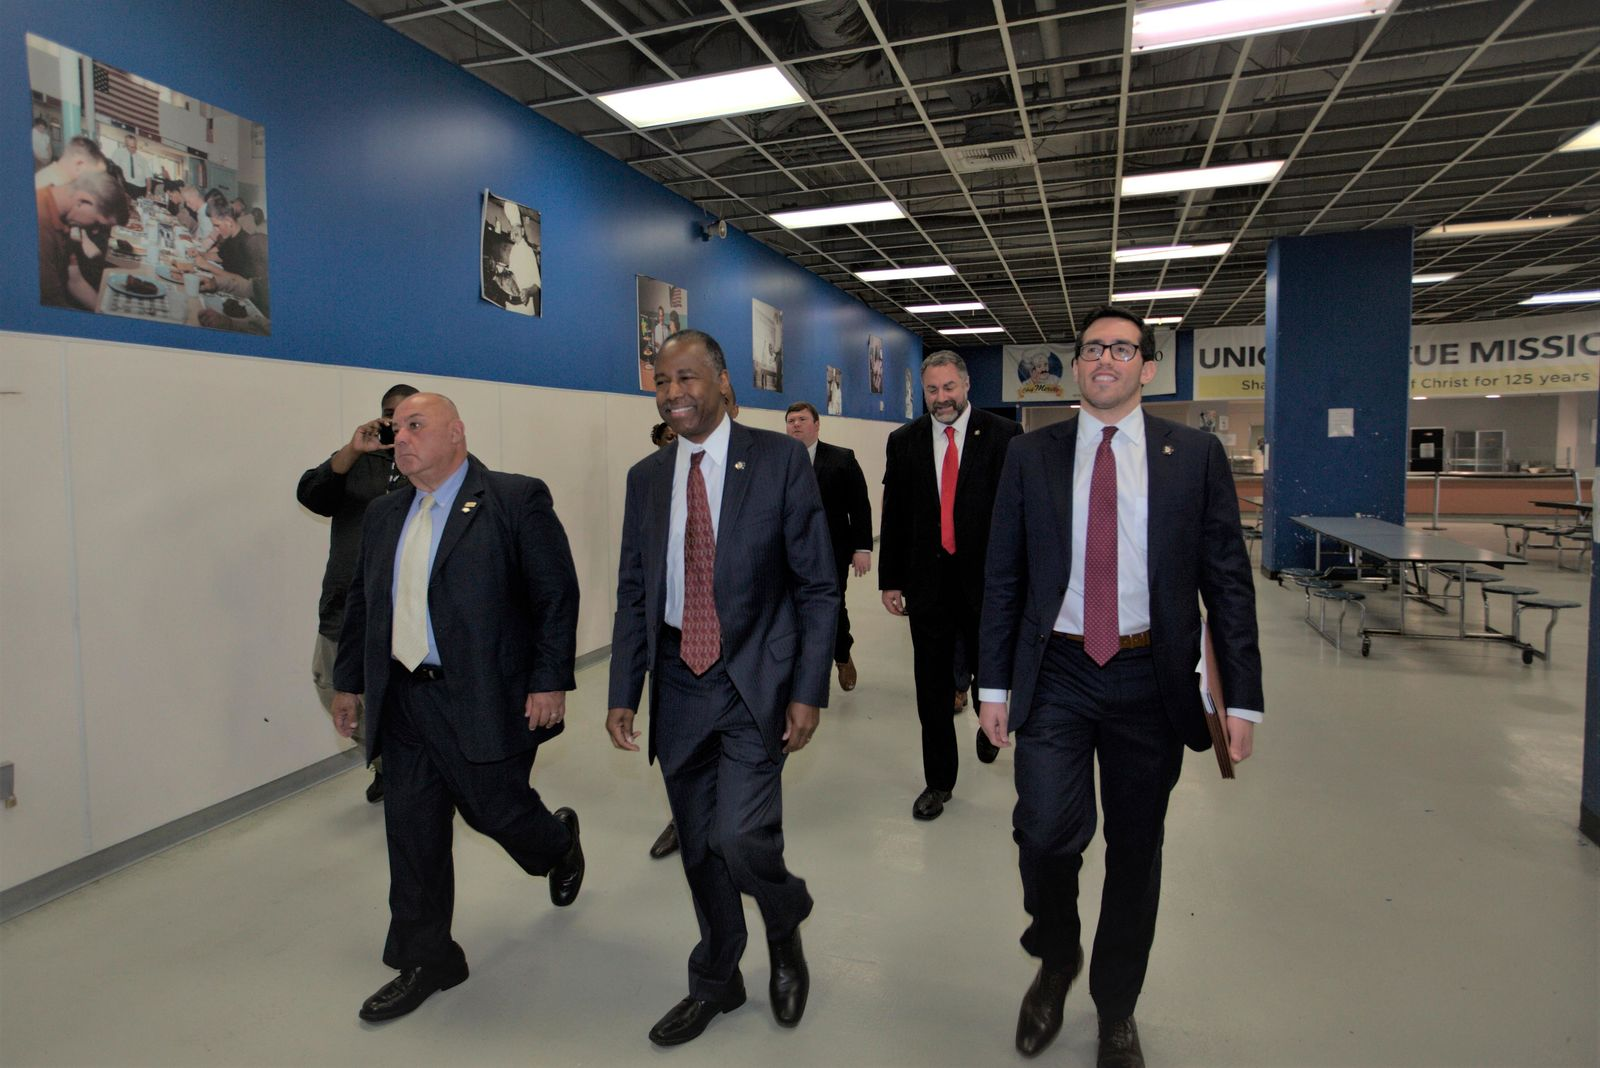 U.S. Department of Housing and Urban Development secretary Ben Carson, second from left, tours the Union Rescue Mission in Skid Row area of downtown Los Angeles Wednesday, Sept. 18, 2019. (AP Photo/Damian Dovarganes)